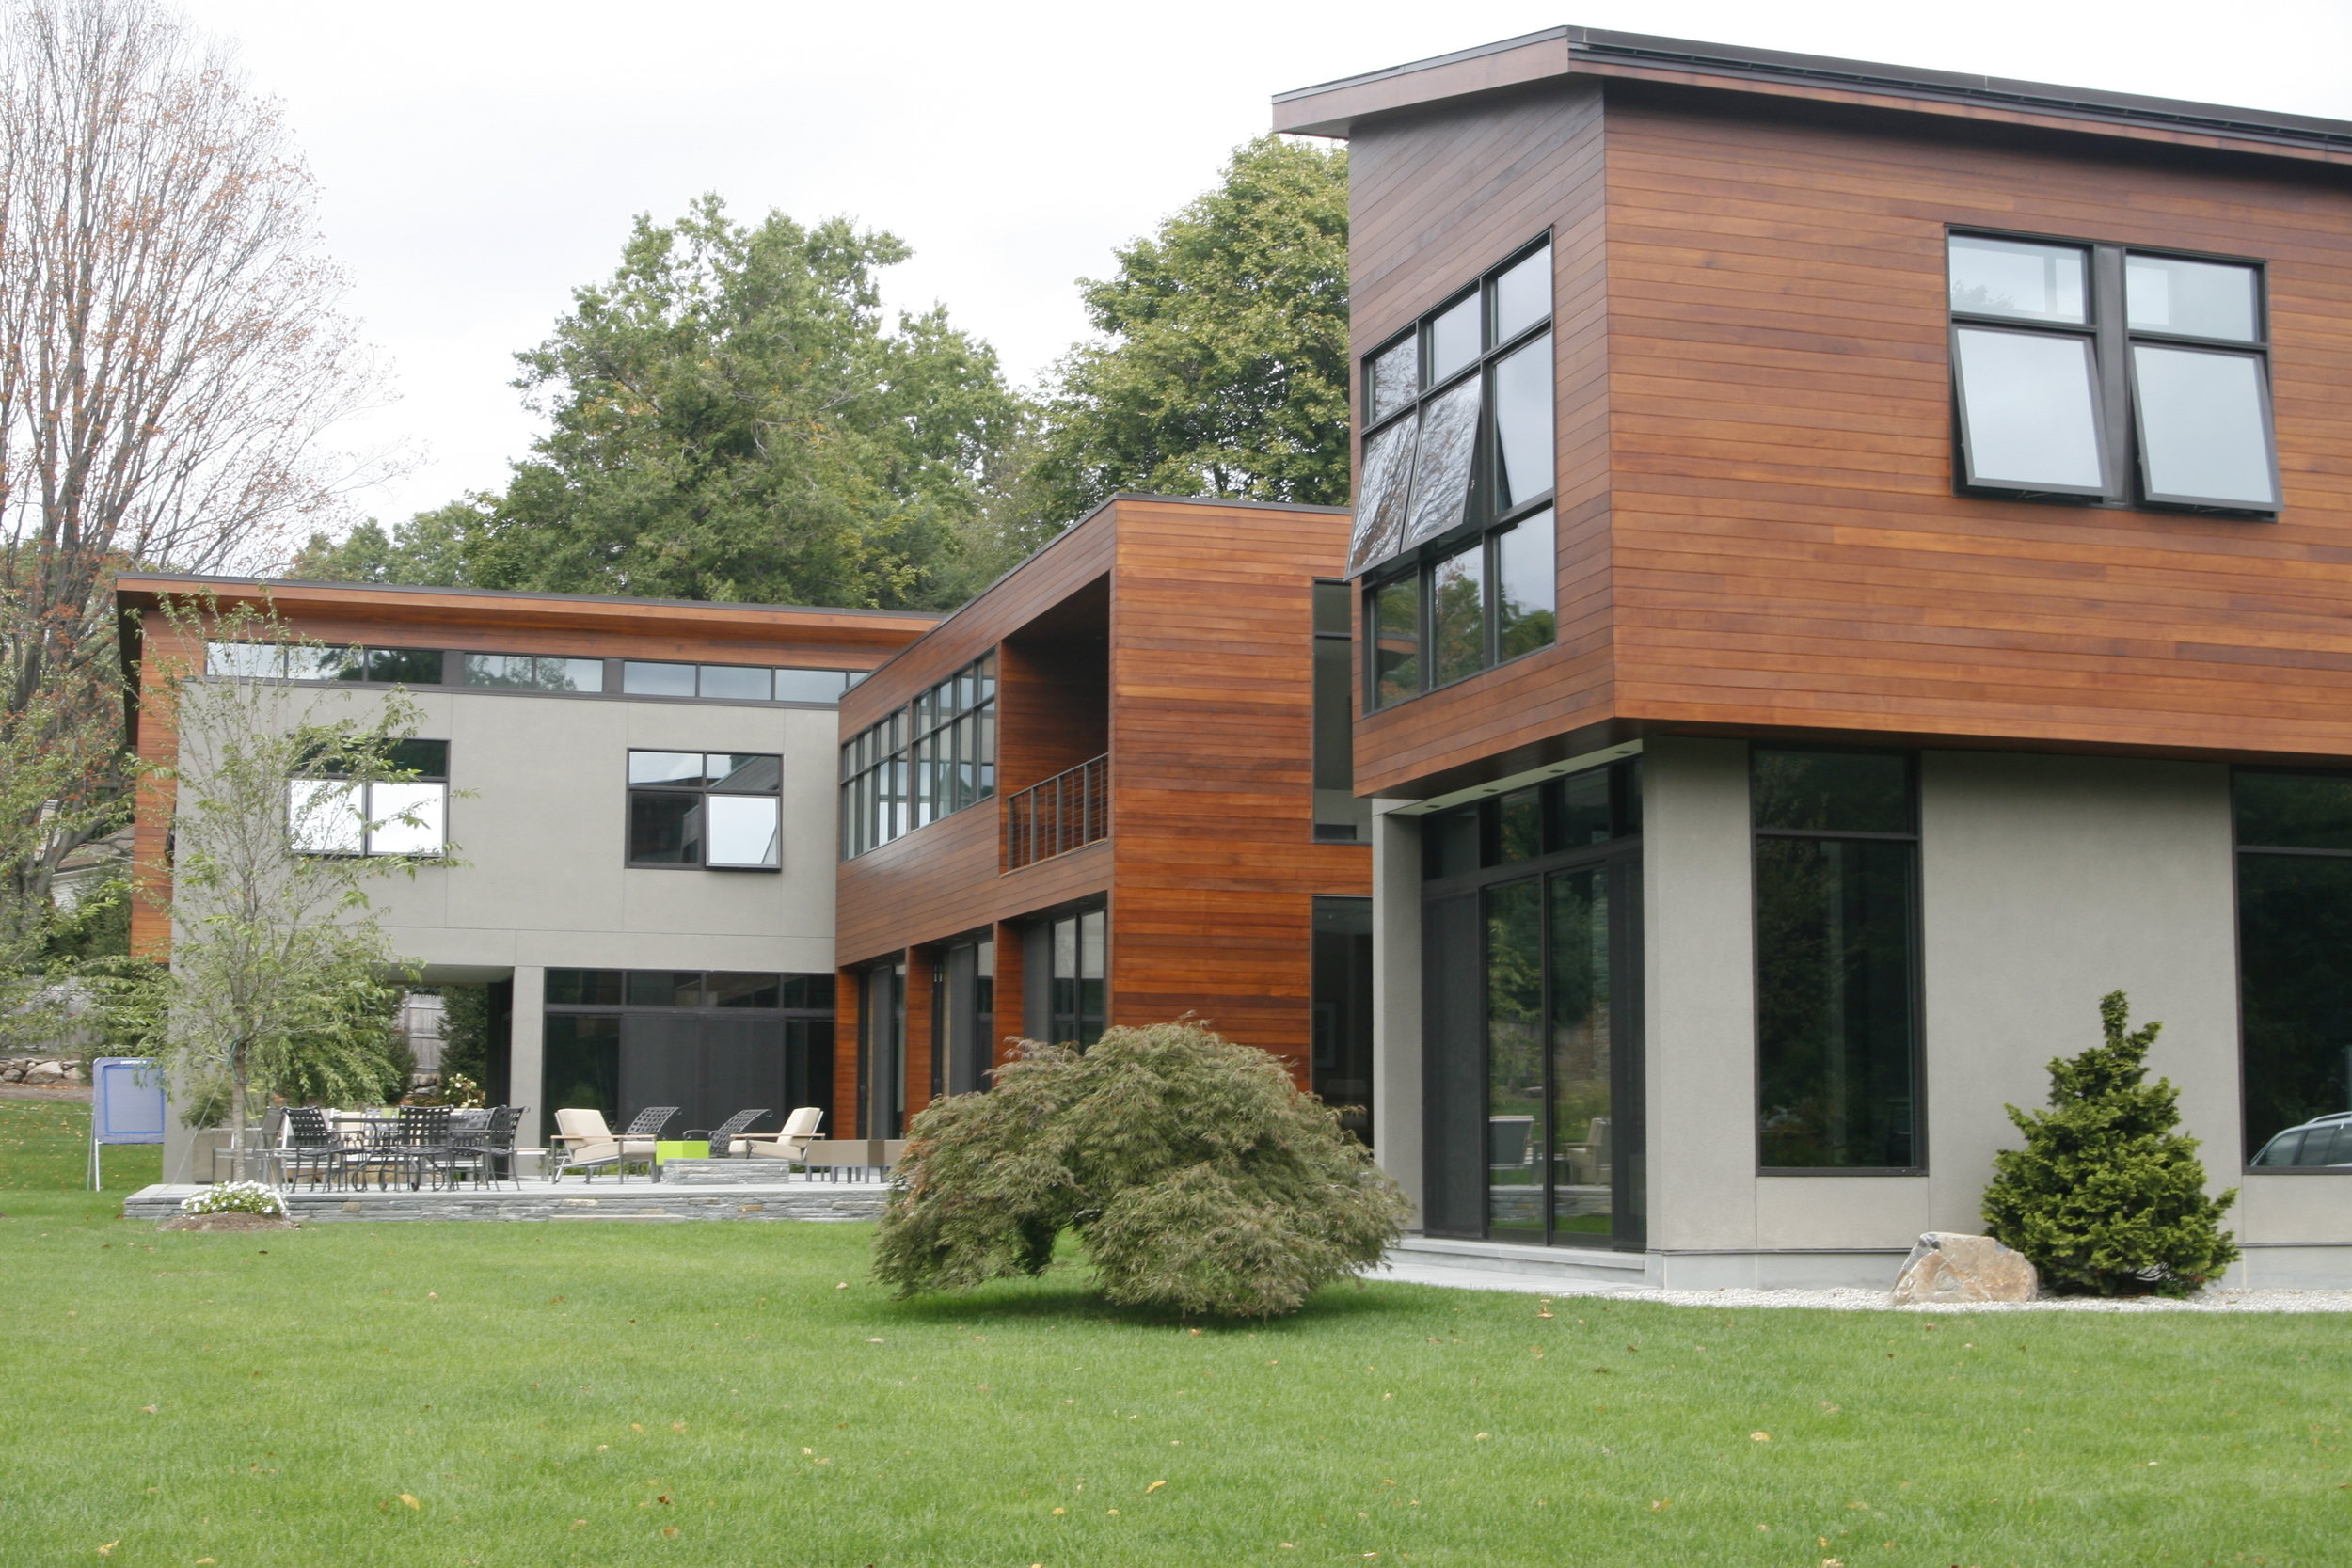 modern architecture stone and wood siding landscaping